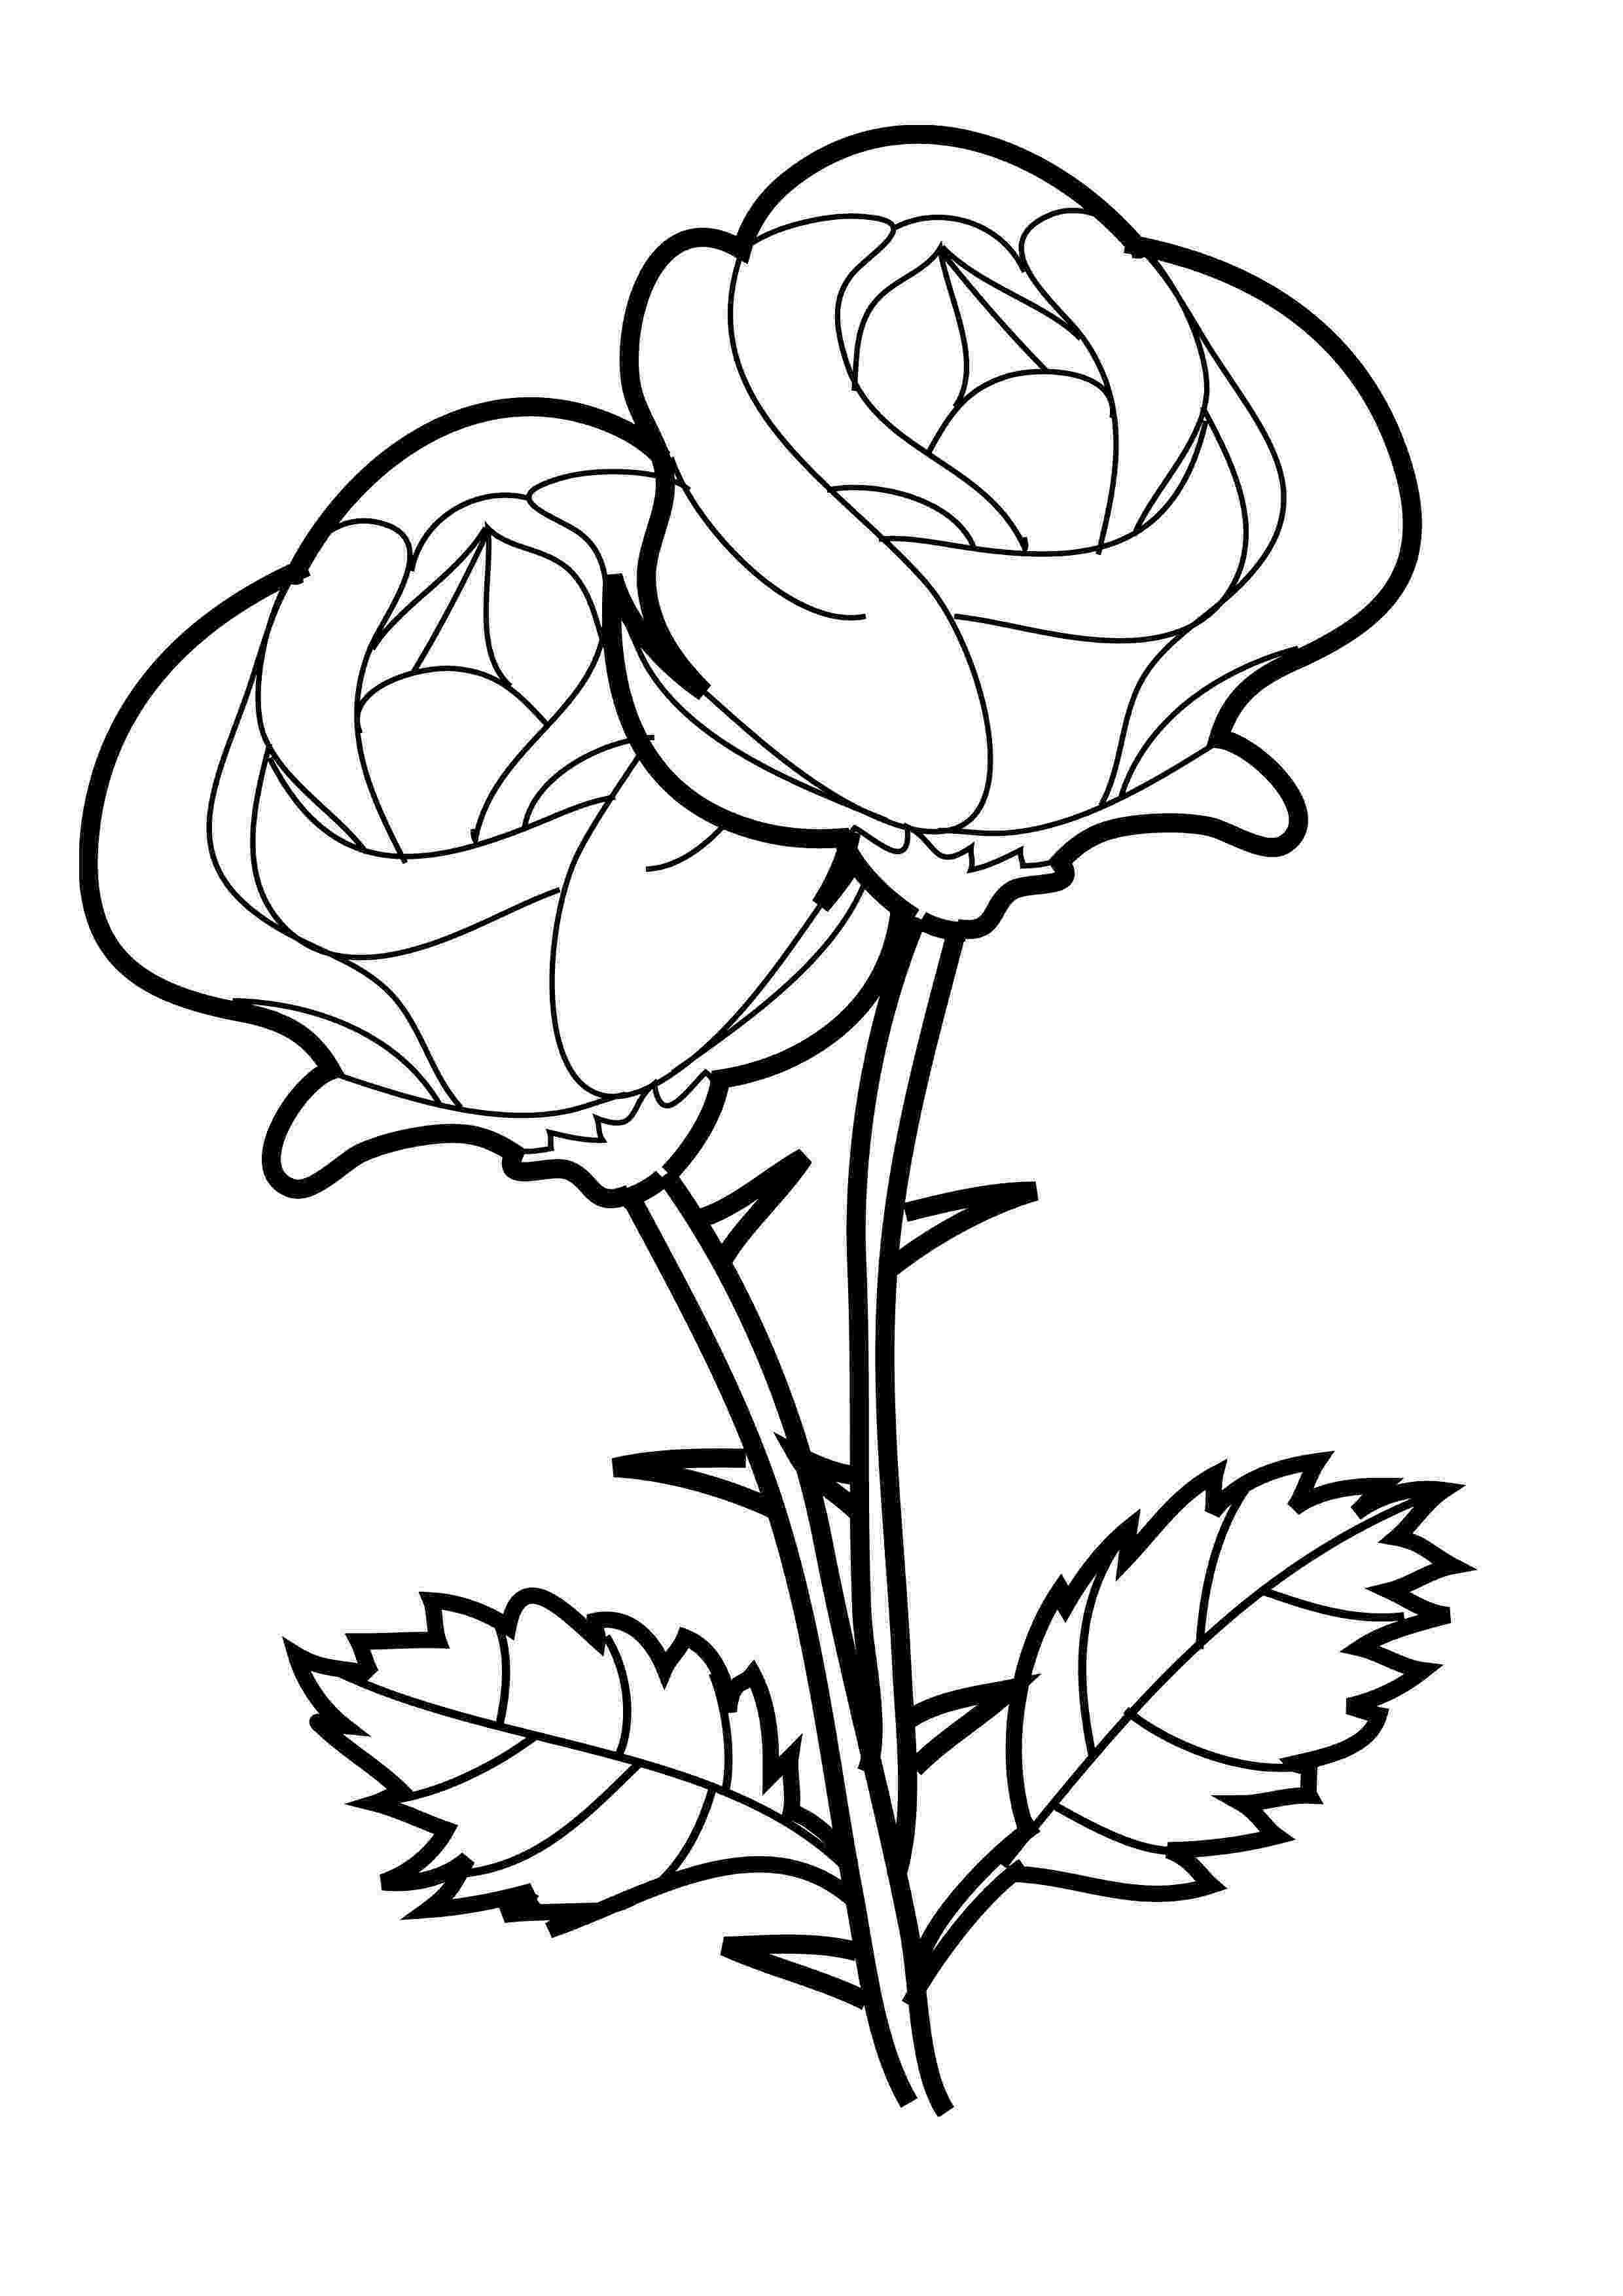 roses coloring pictures printable rose coloring pages for kids cool2bkids pictures roses coloring